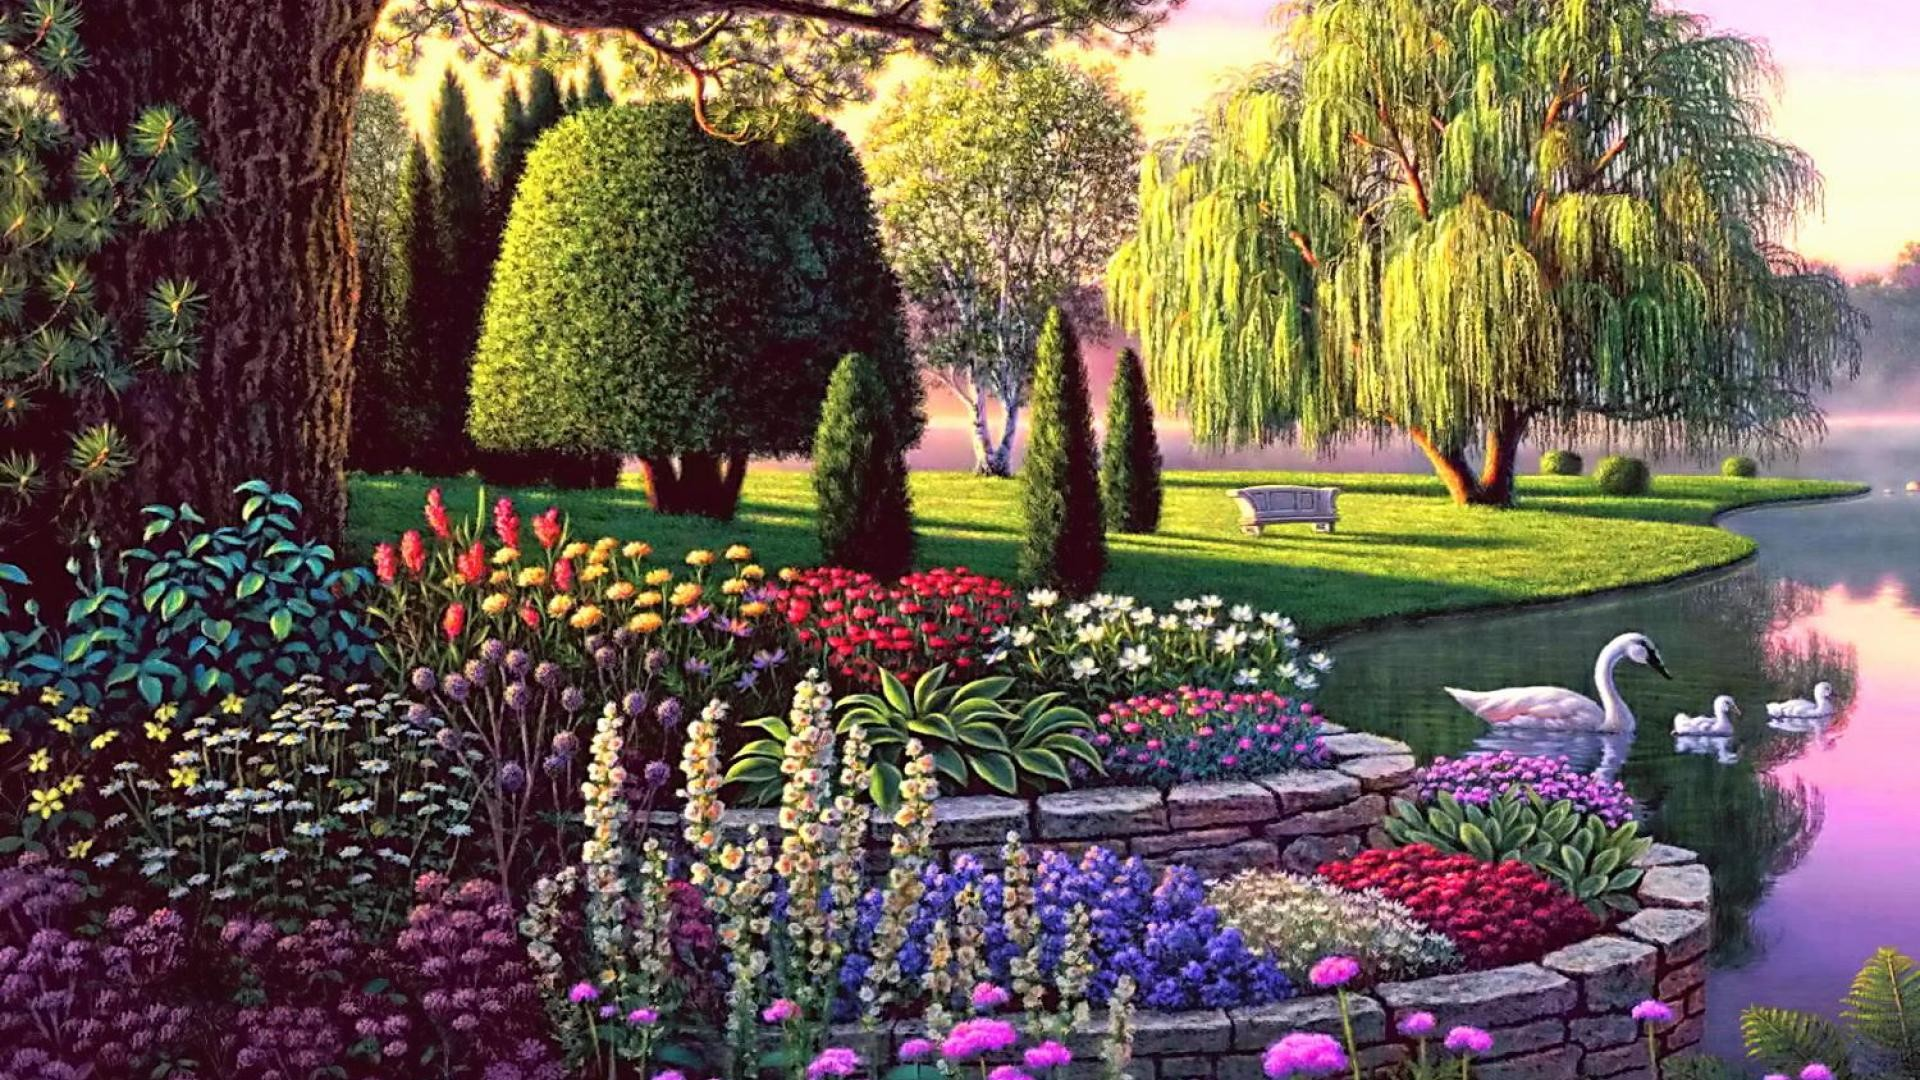 1920x1080 secret garden wallpaper #368021